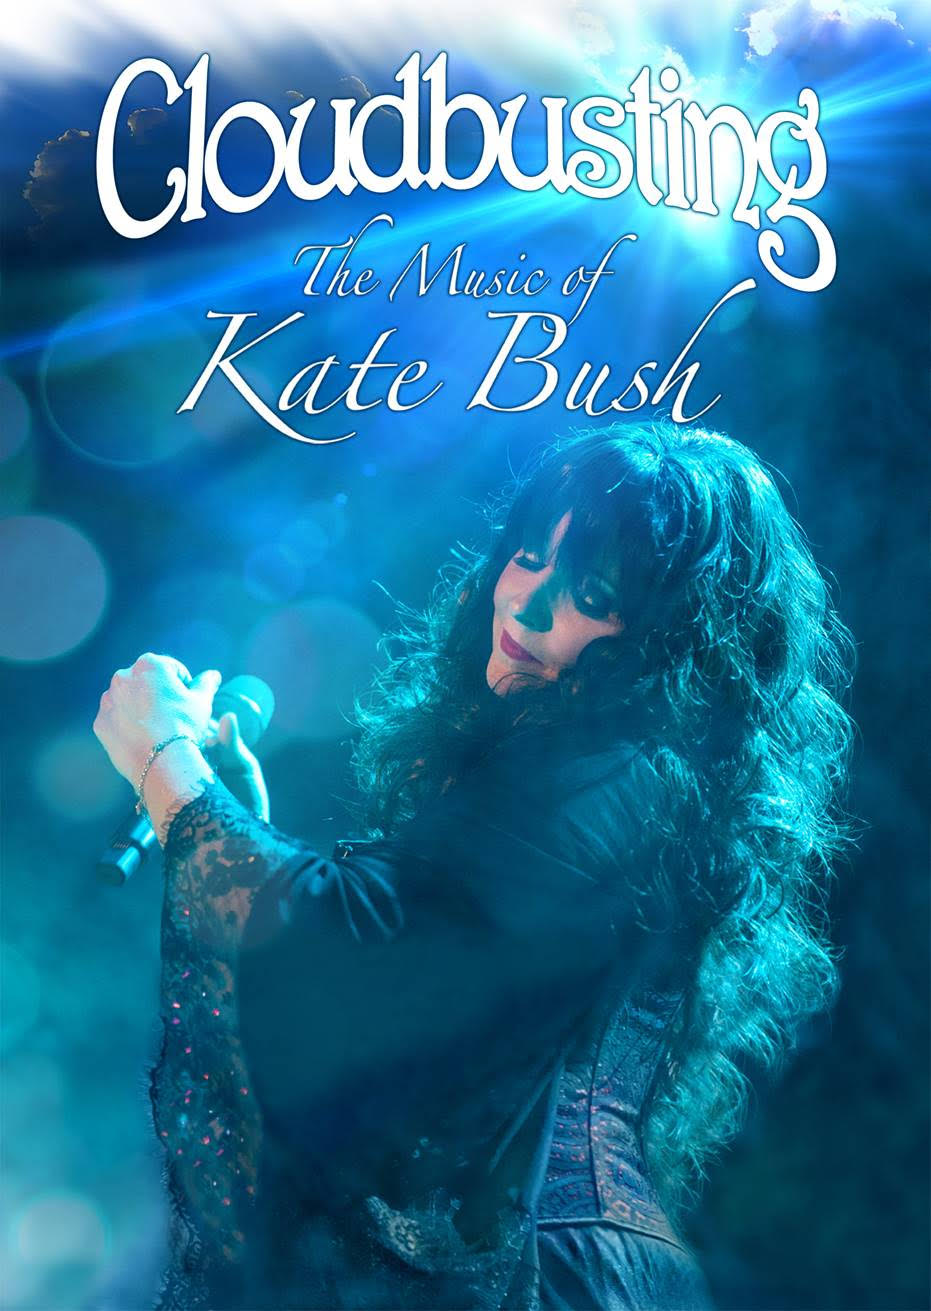 Cloudbusting Picture New 1.jpg